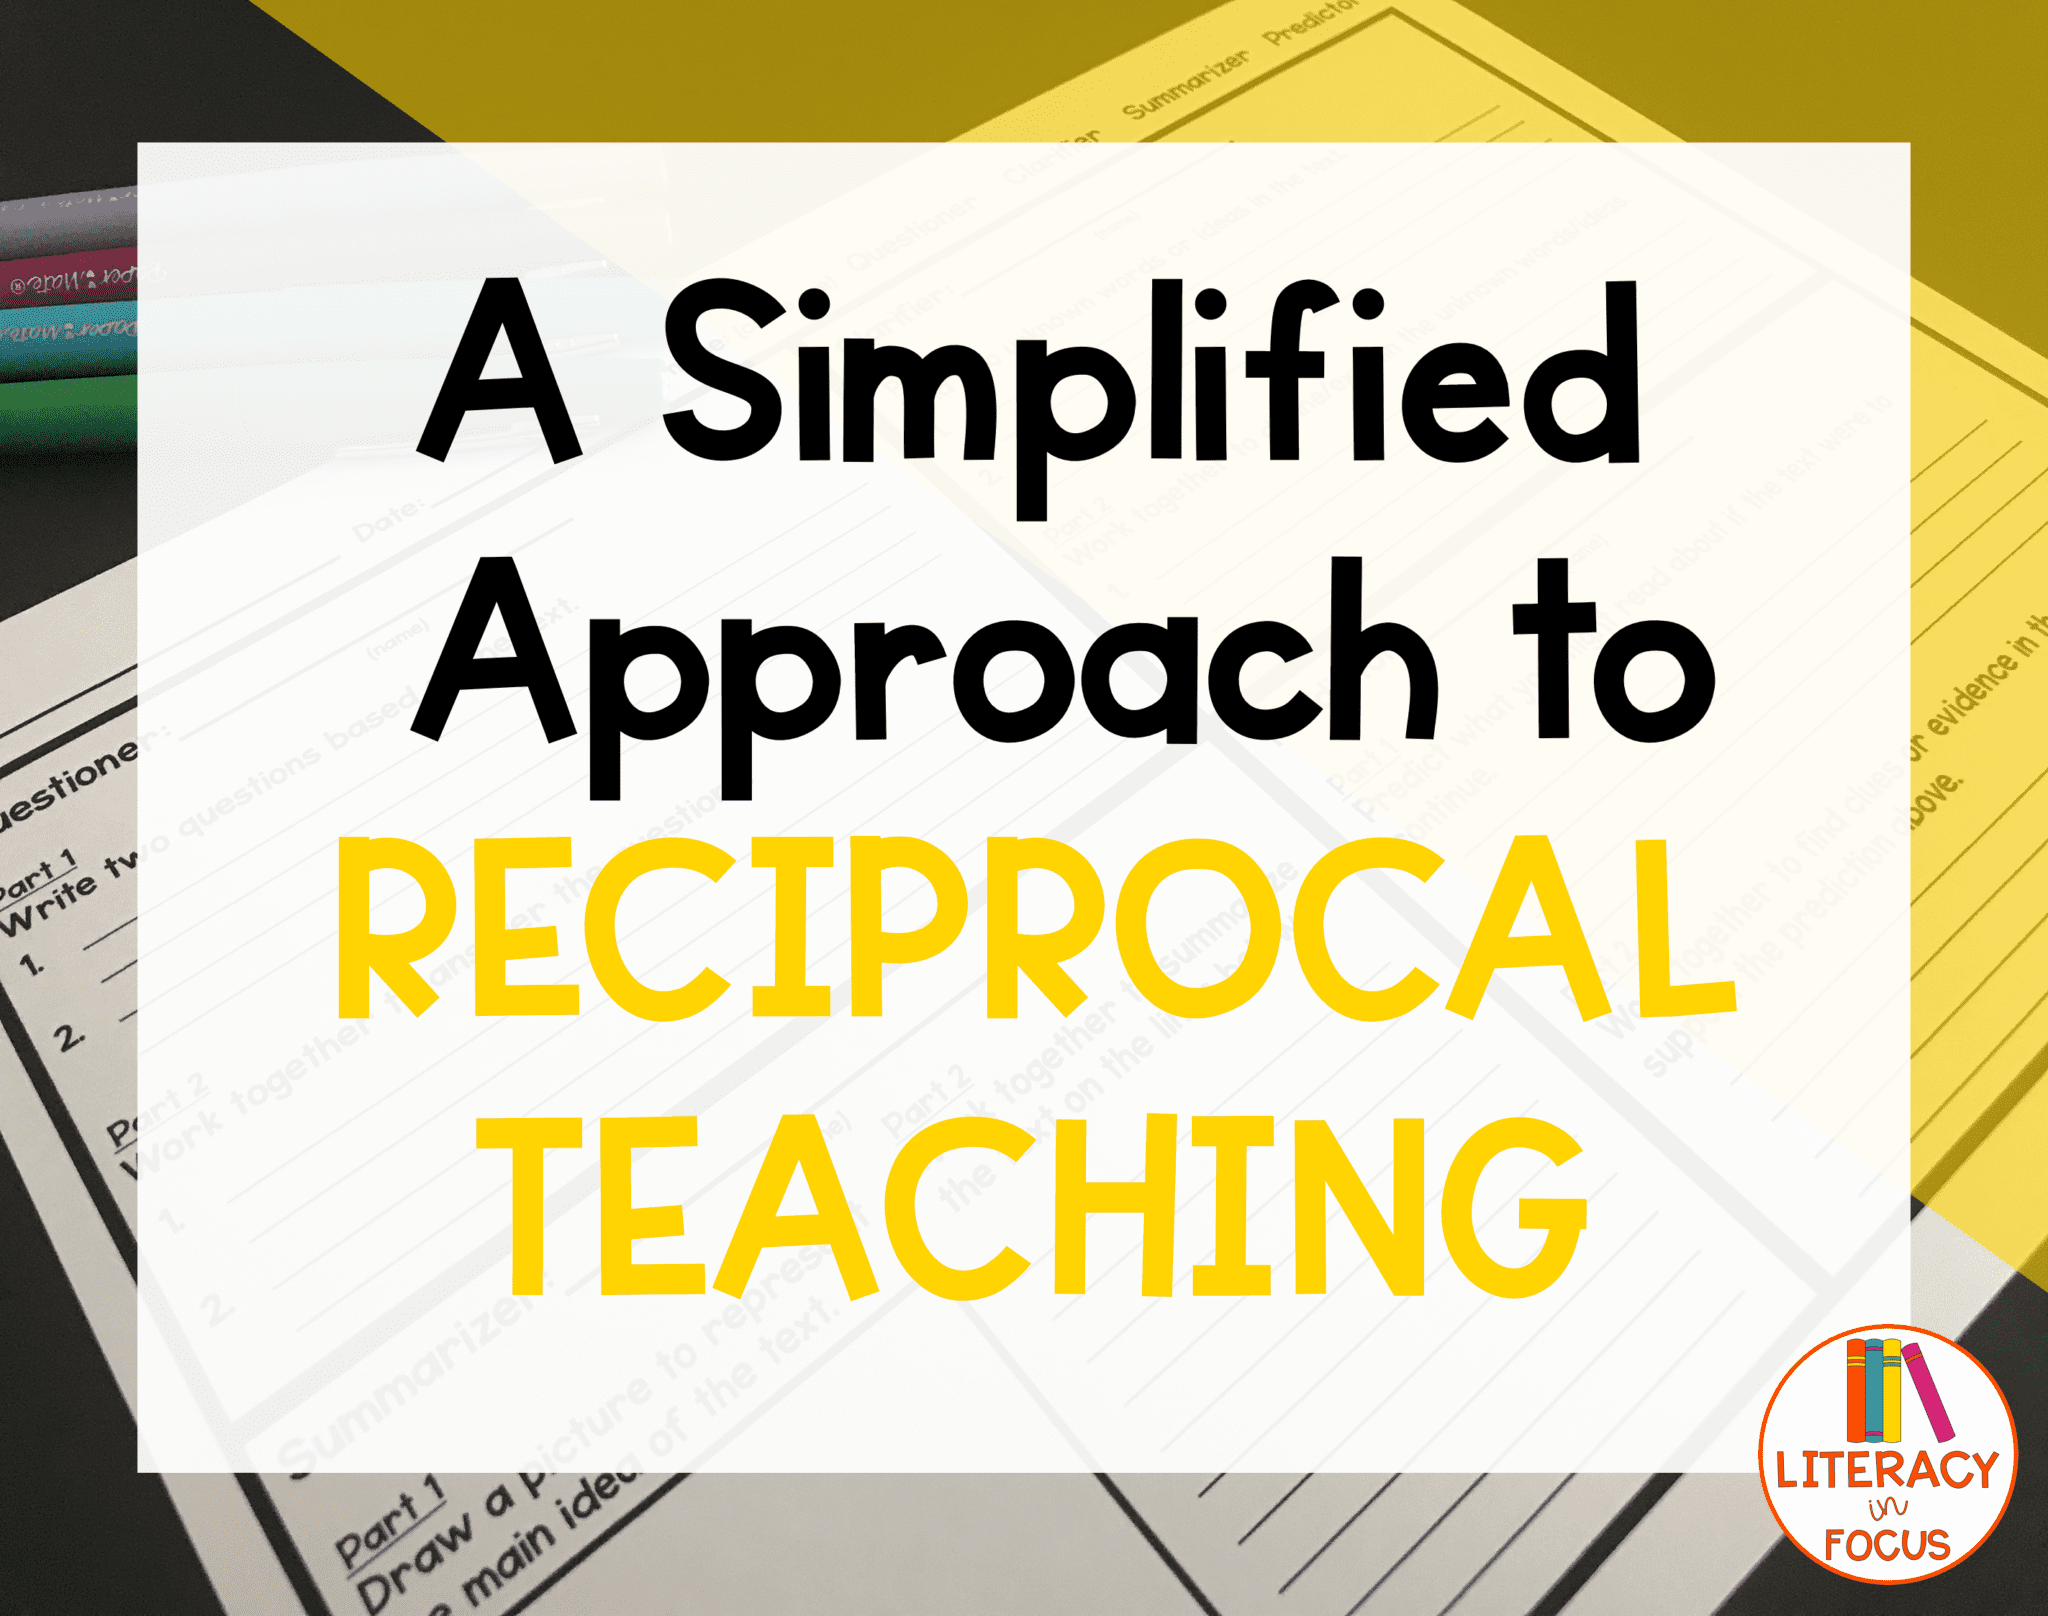 Worksheets Reciprocal Teaching Worksheet a simplified approach to reciprocal teaching literacy in focus title image